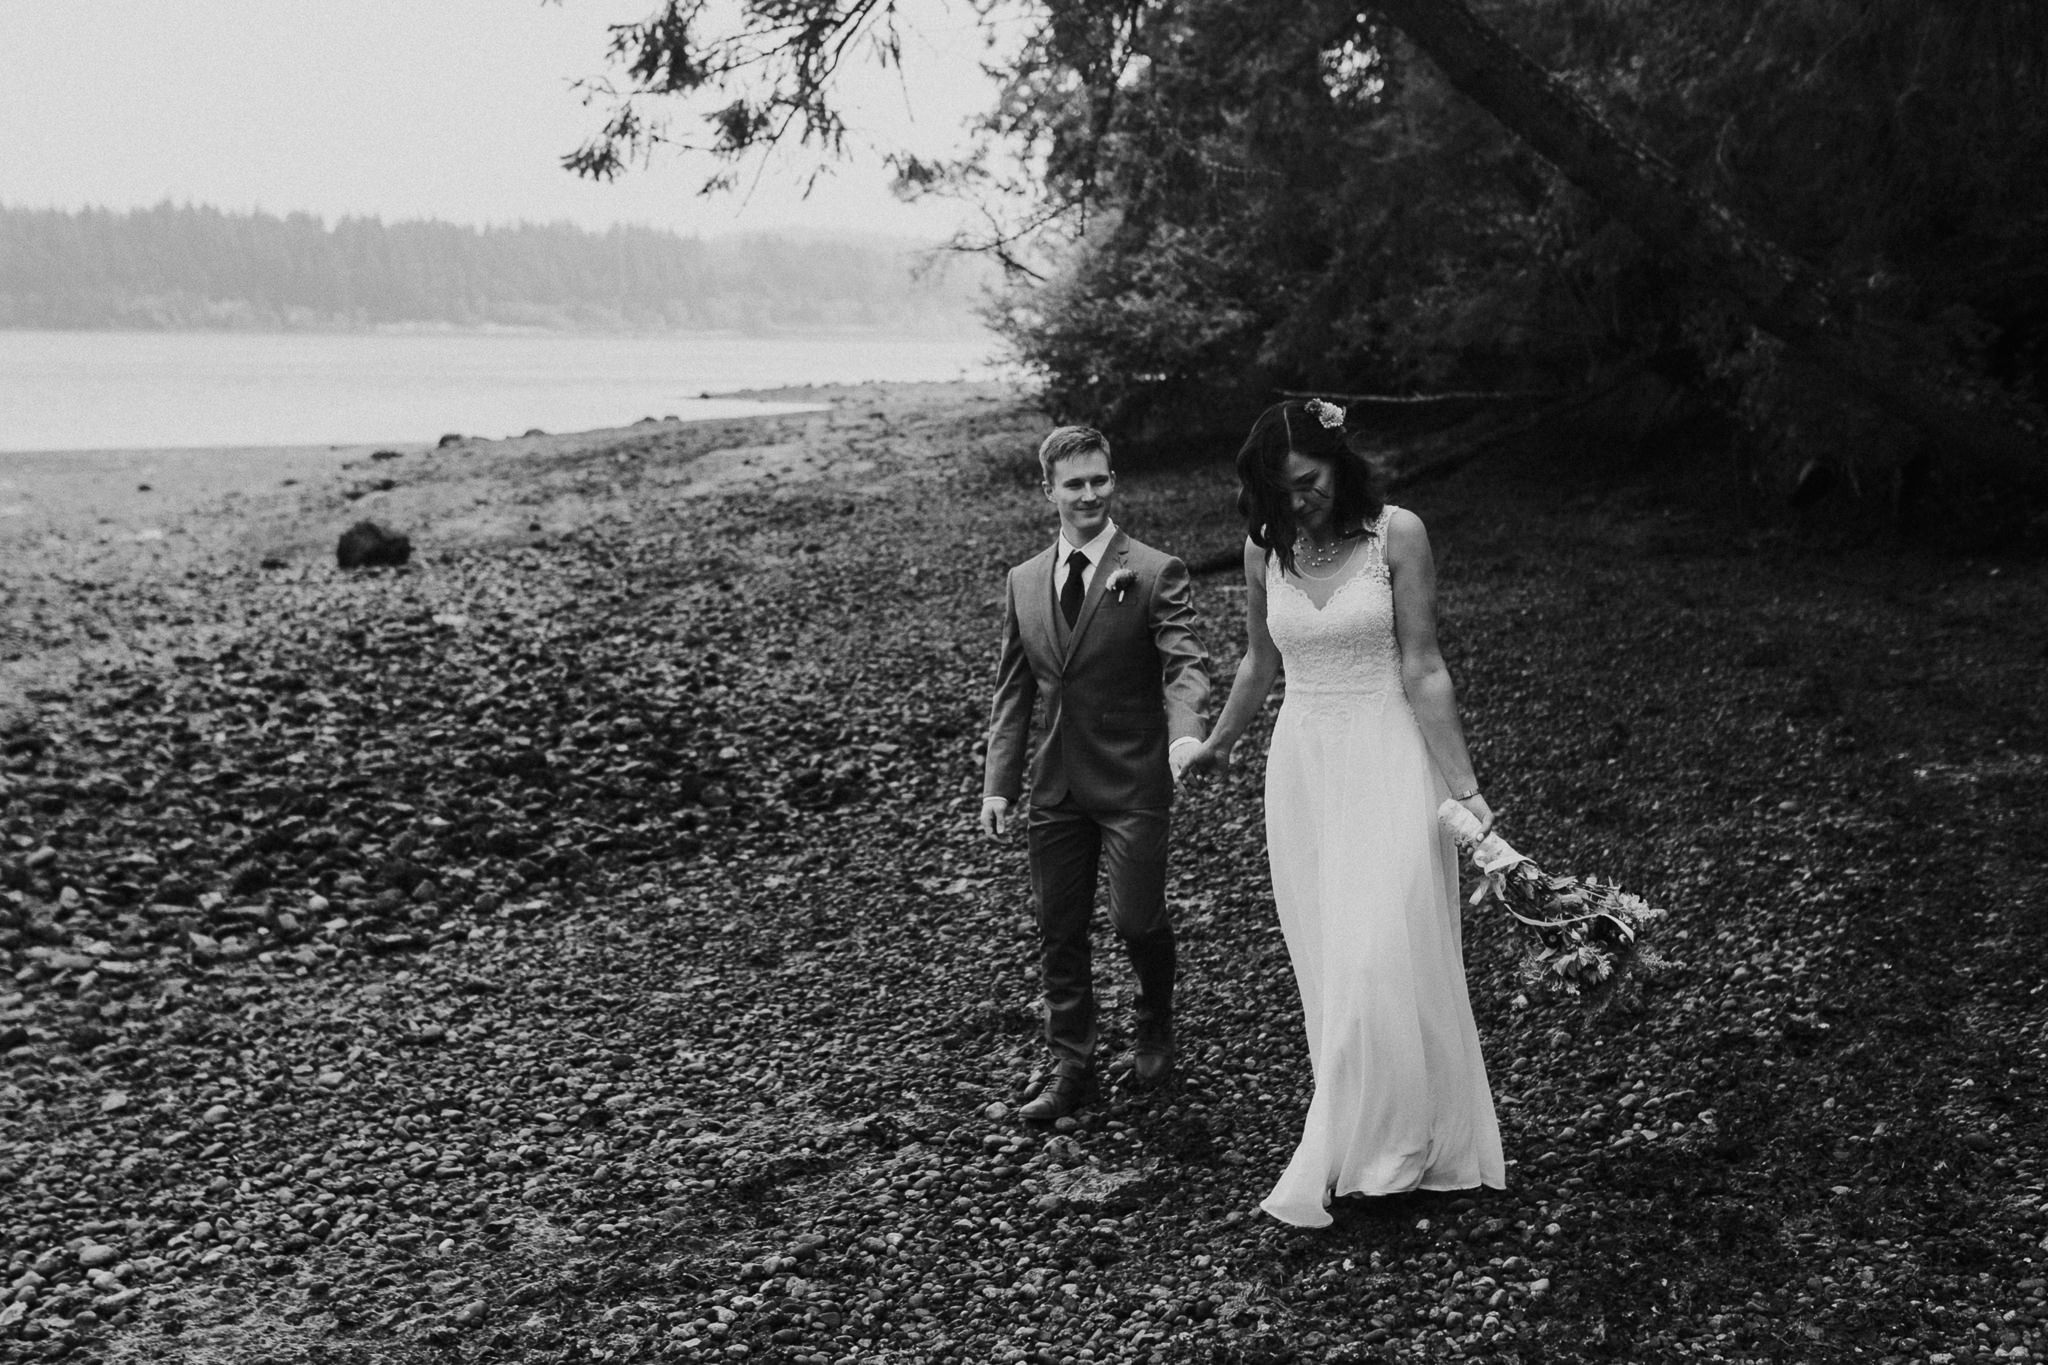 Port-Orchard-Manchester-Park-elopement-Bride-And-Groom-143.jpg